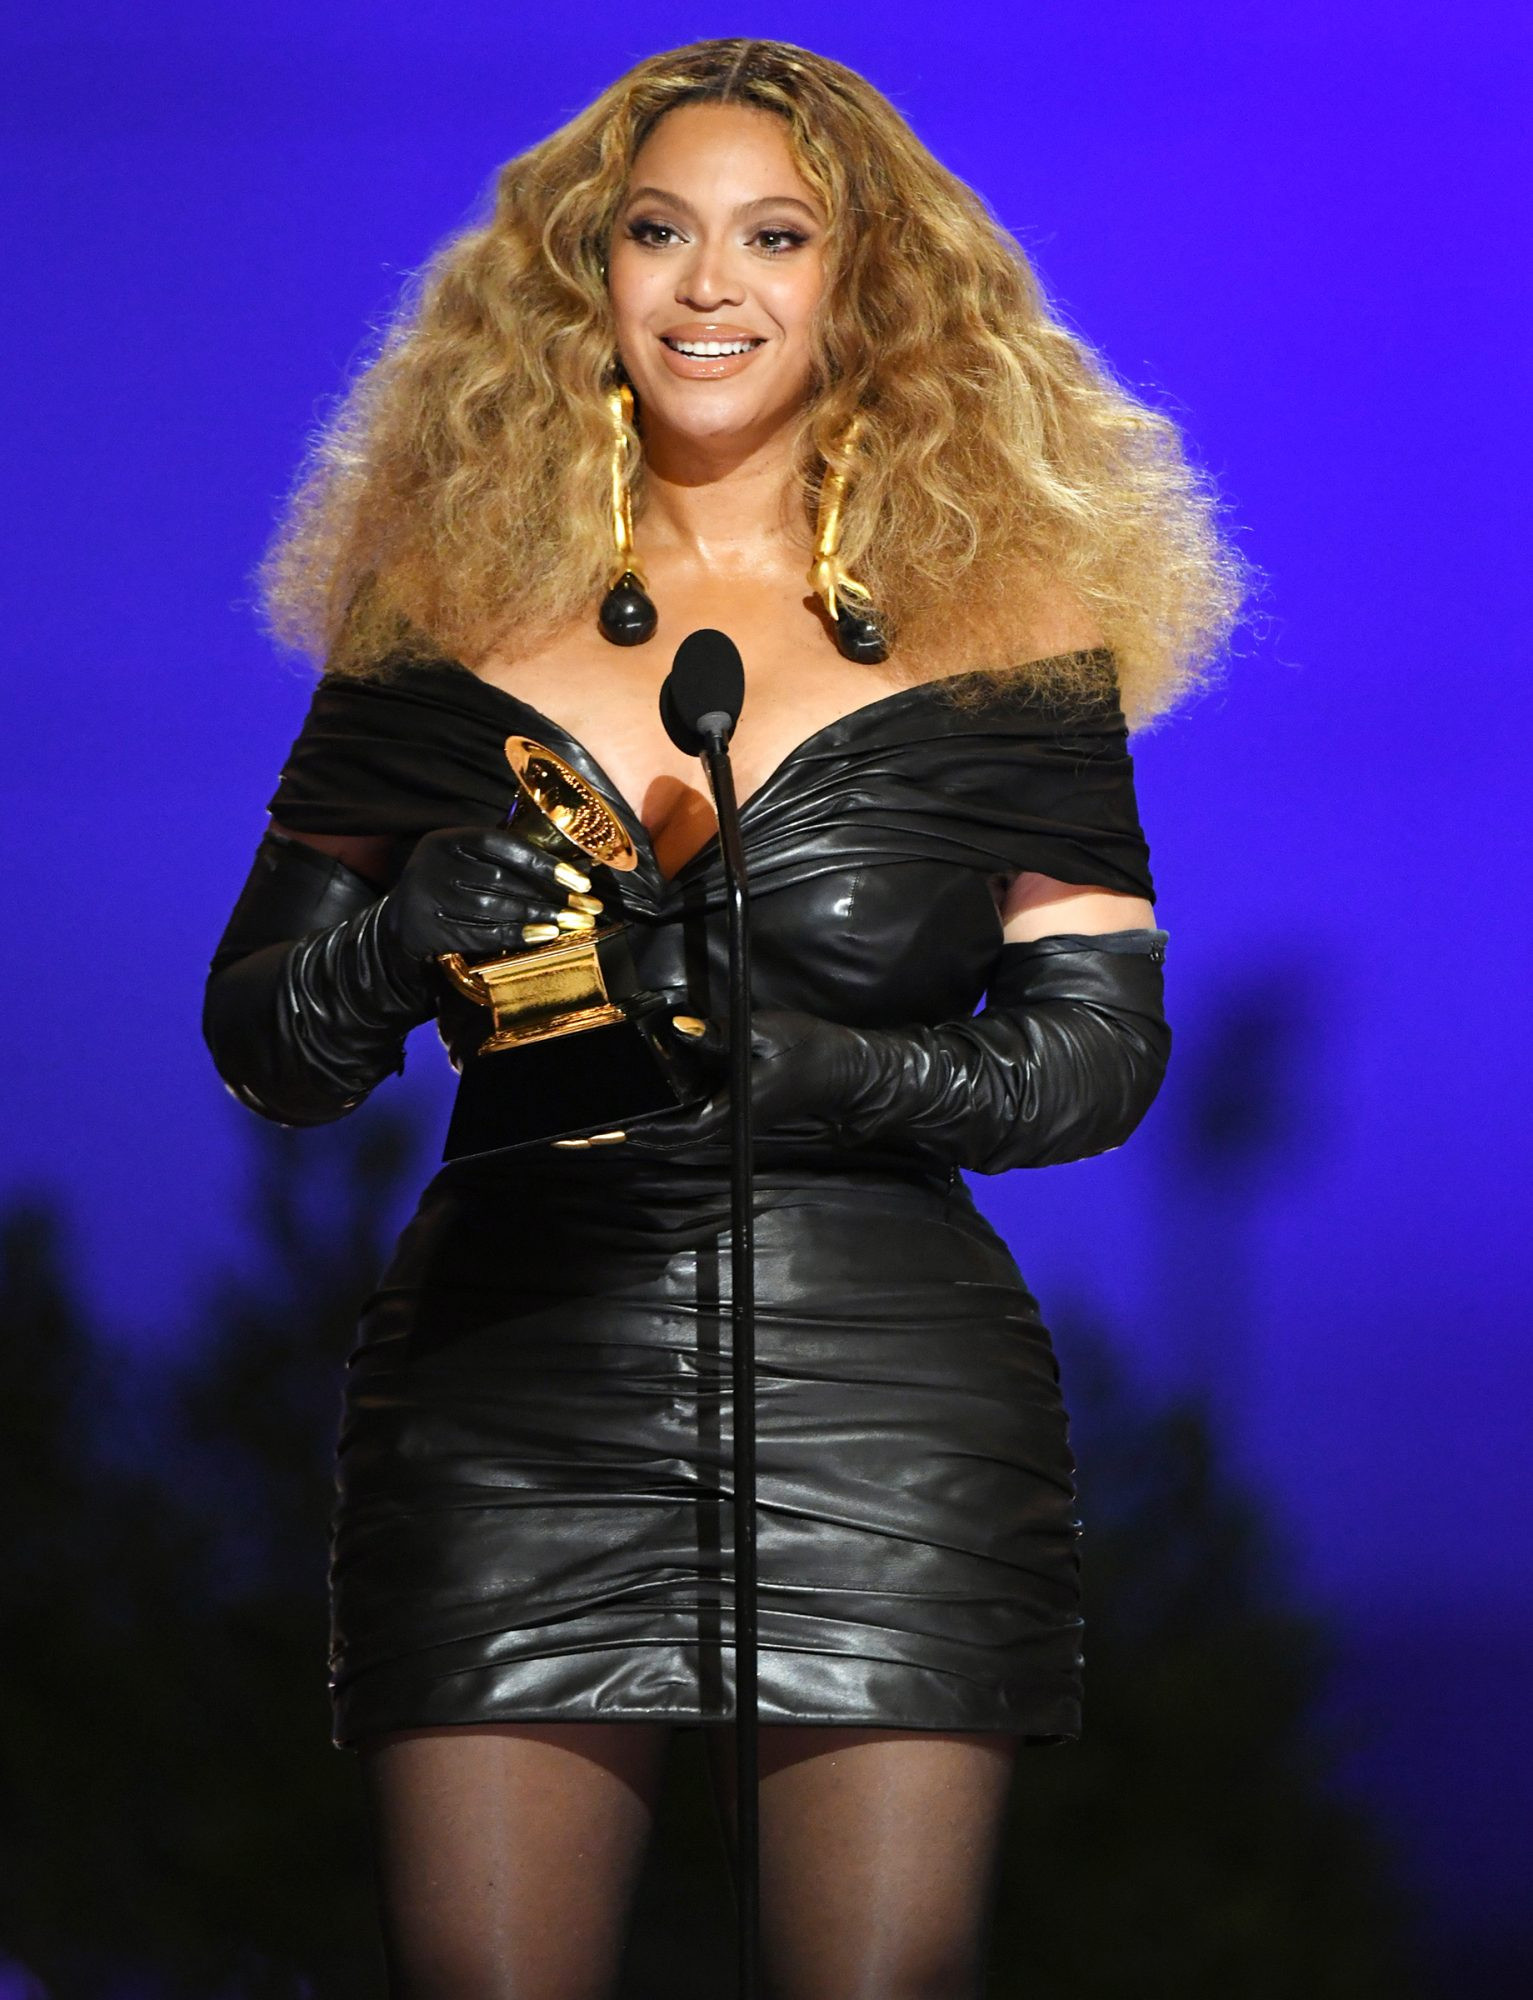 Beyonc makes history with 28th Grammy win, becomes the most-decorated female artist of all time